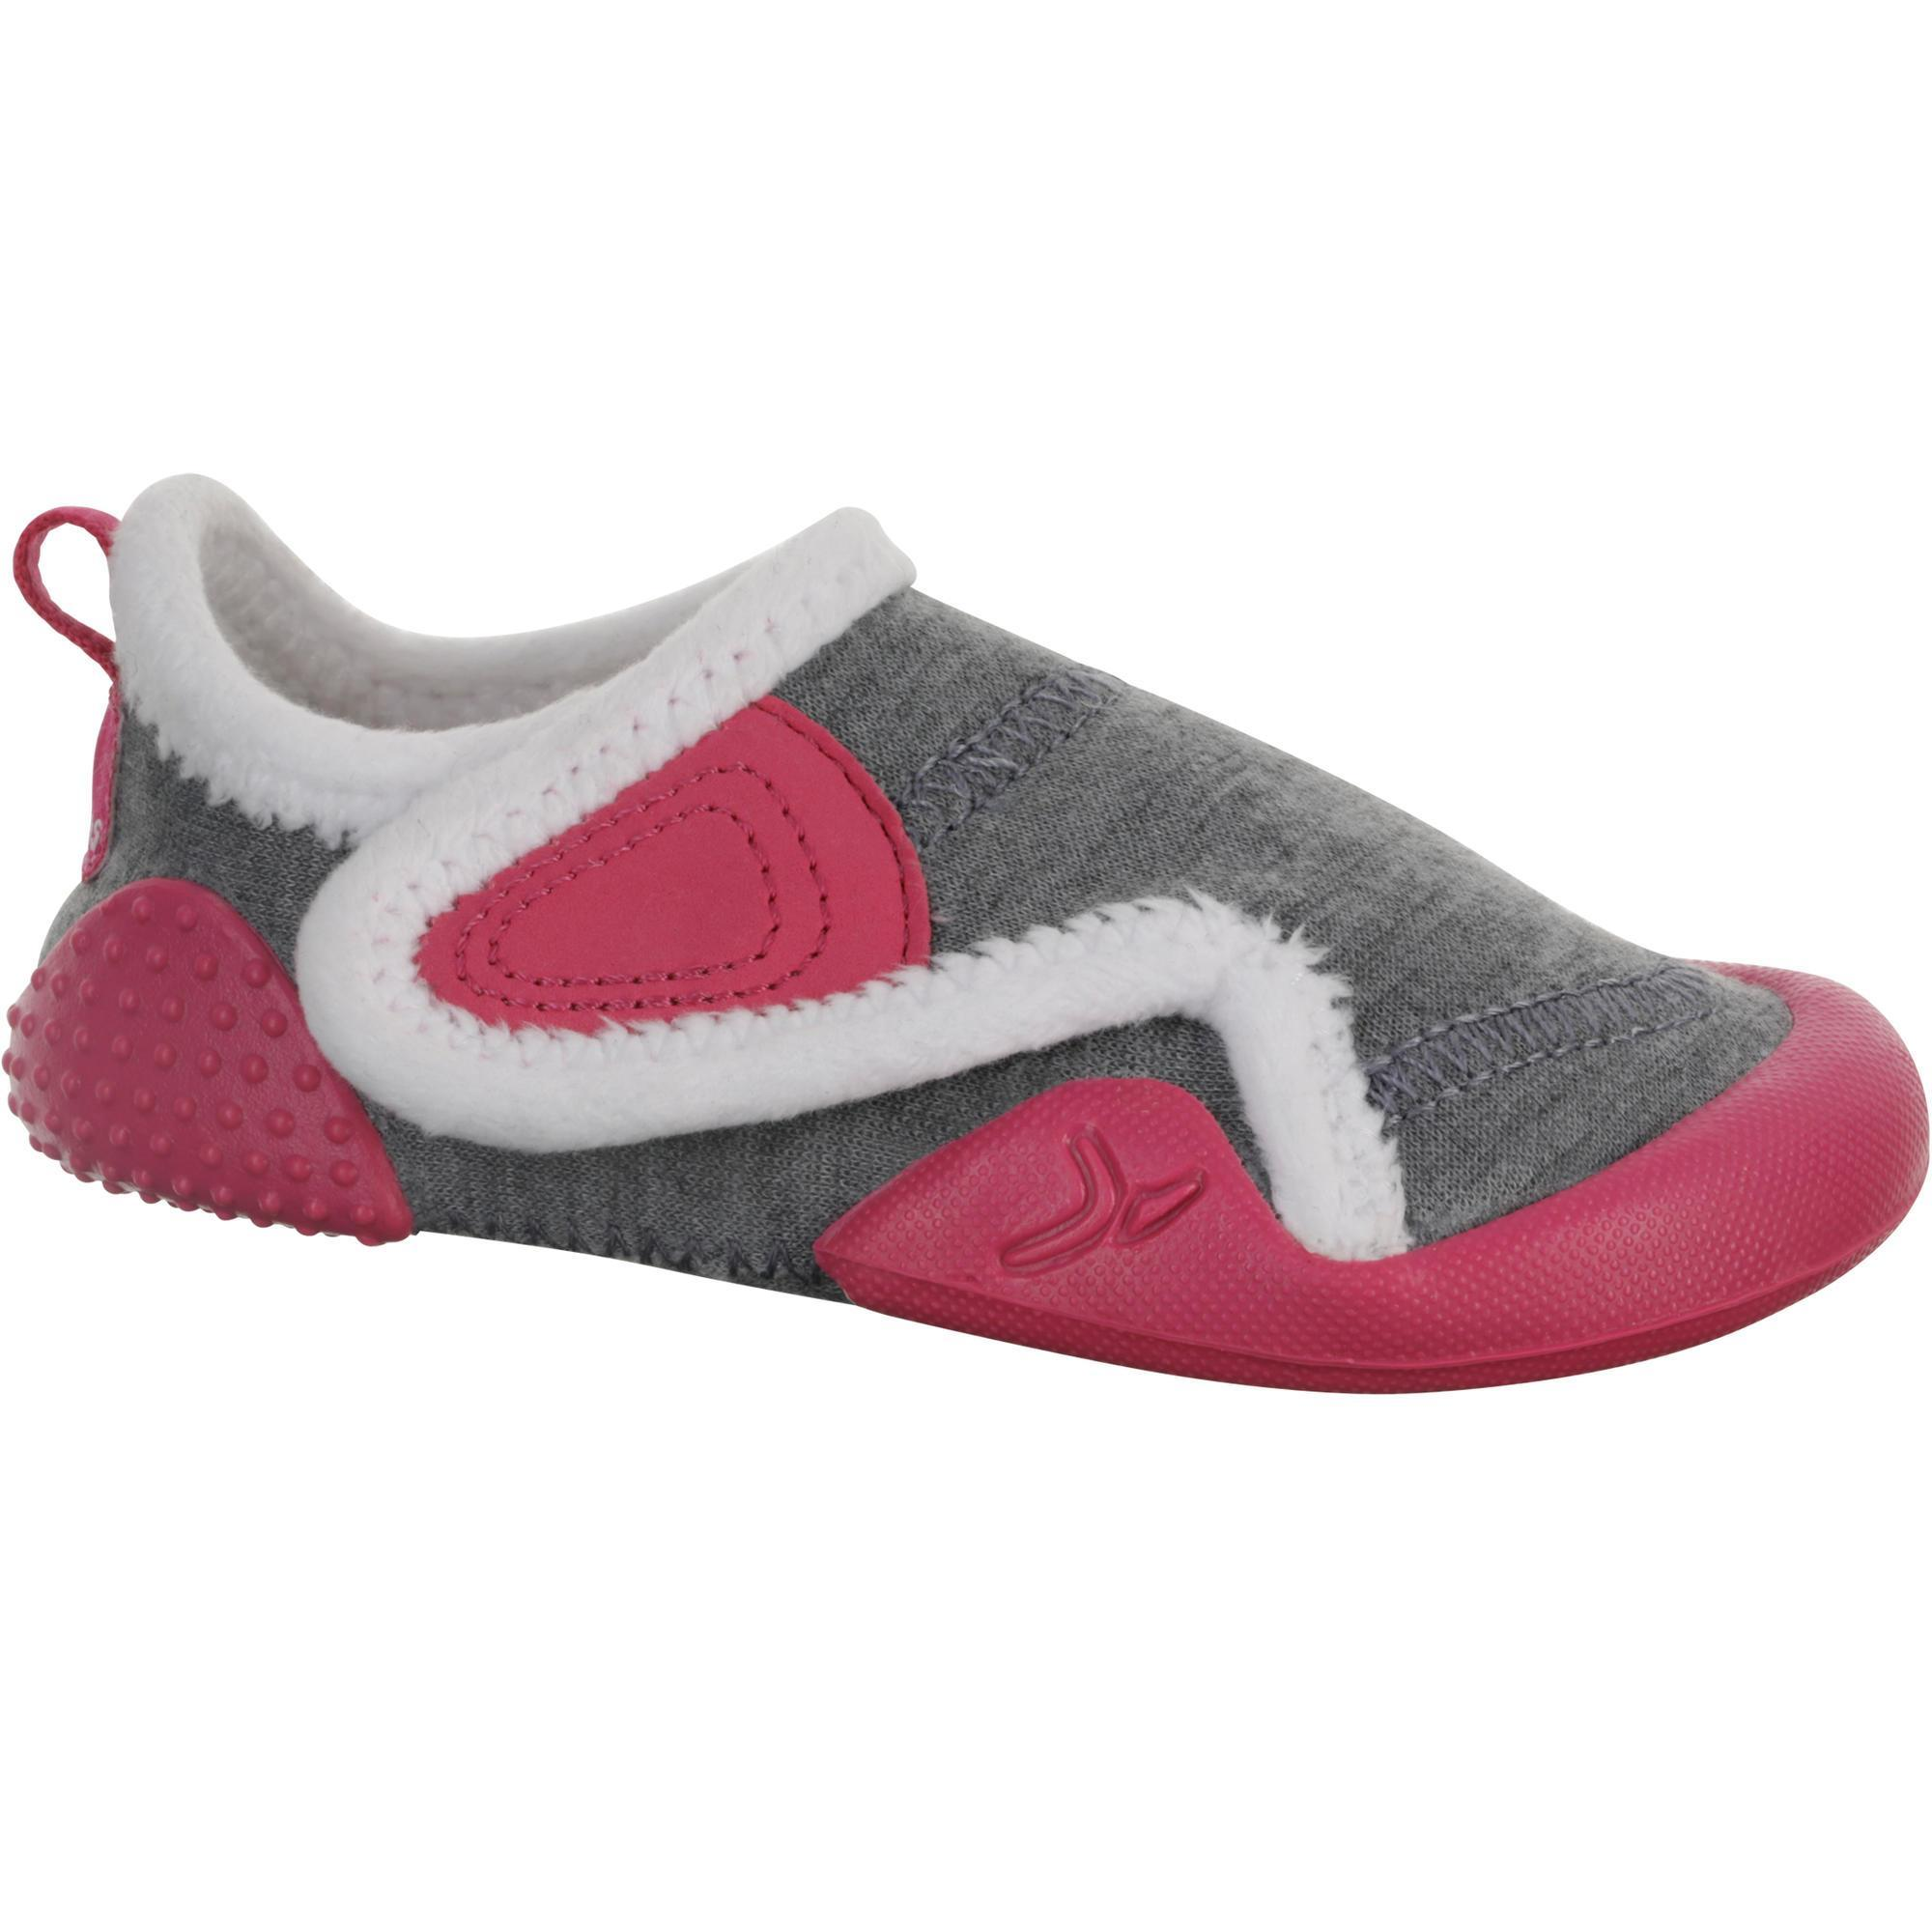 Babylight Baby Gym Shoes Grey Pink White Lining